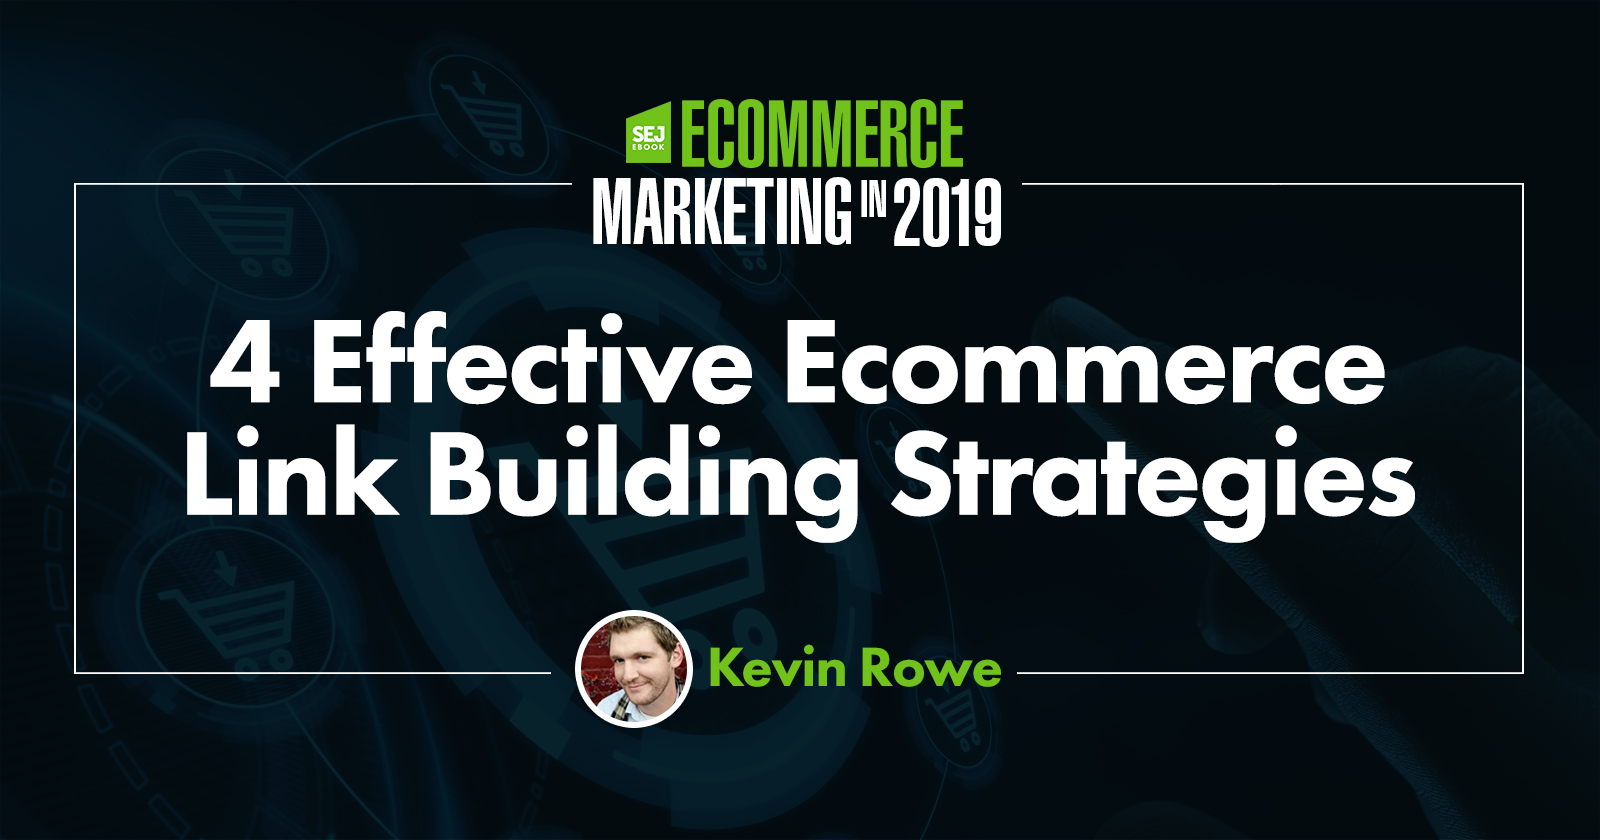 4 Effective Ecommerce Link Building Strategies